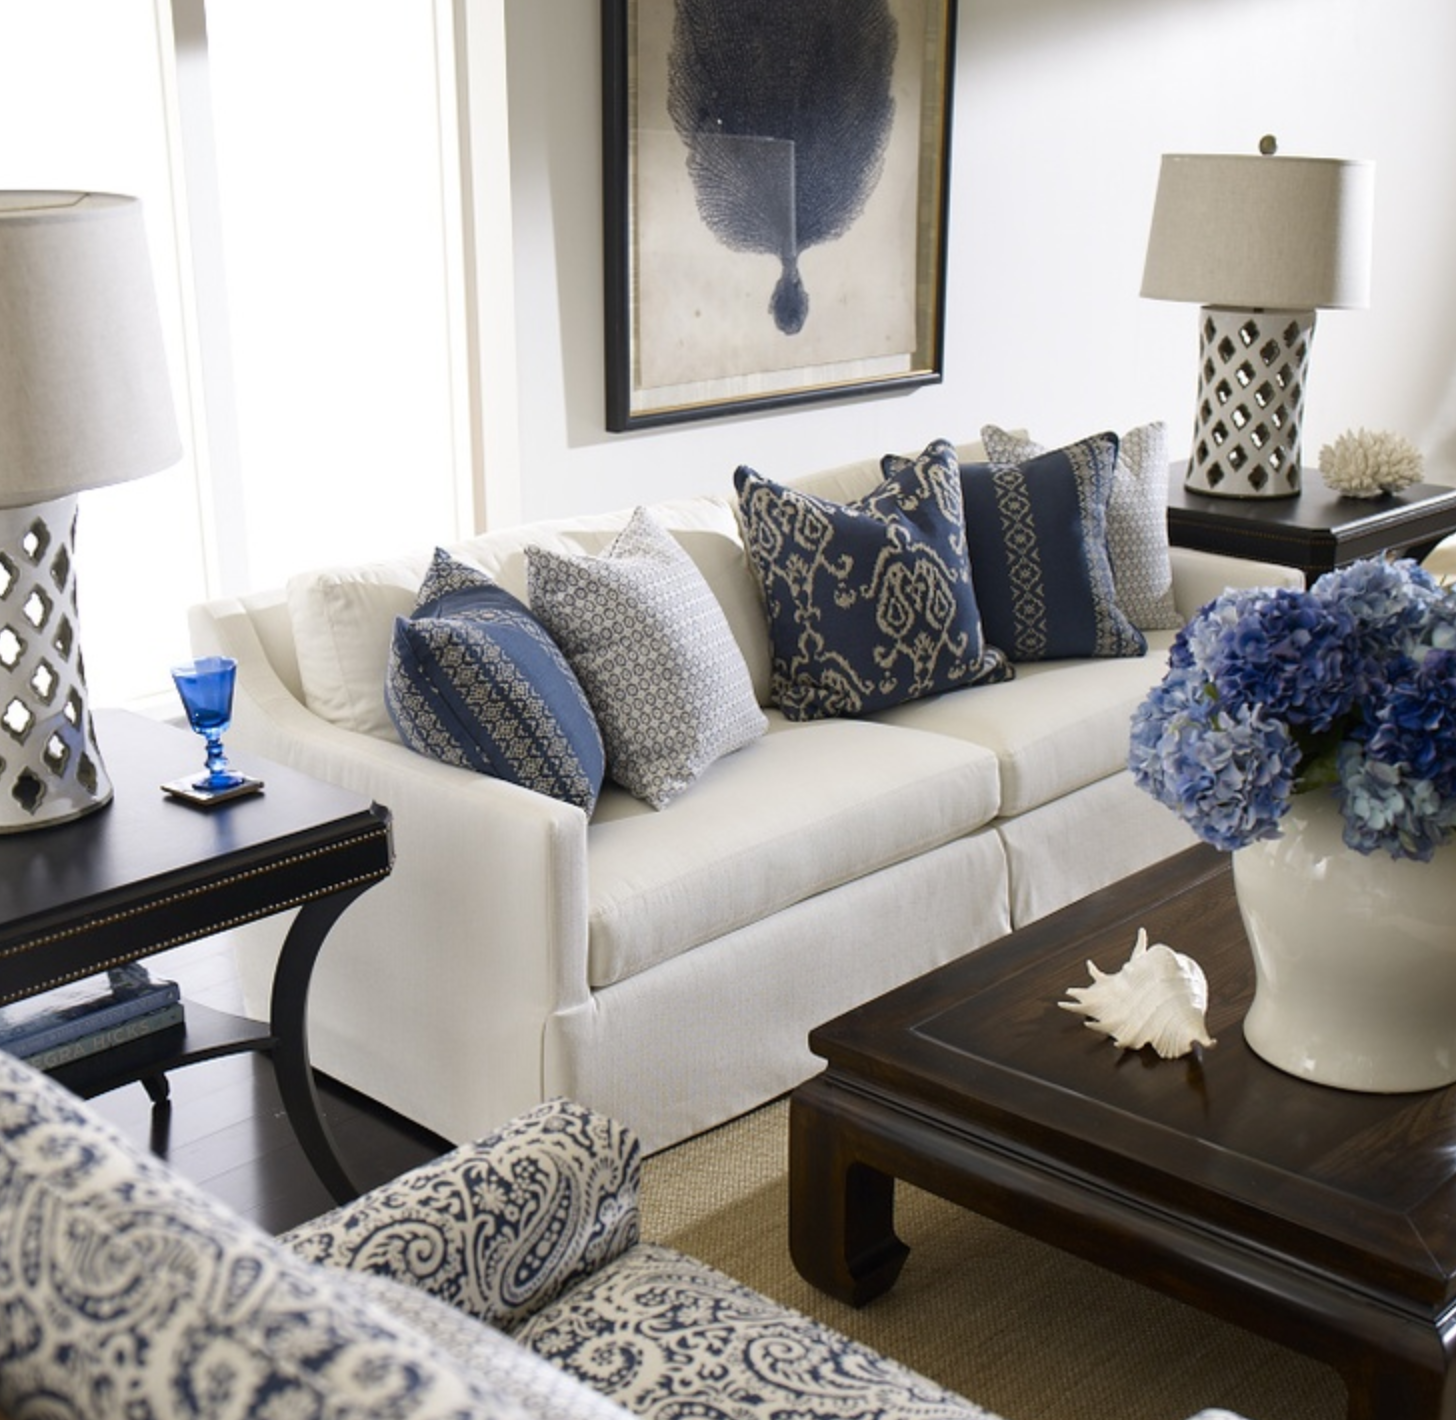 azul e branco | azul e branco | Pinterest | Living rooms, Room and House